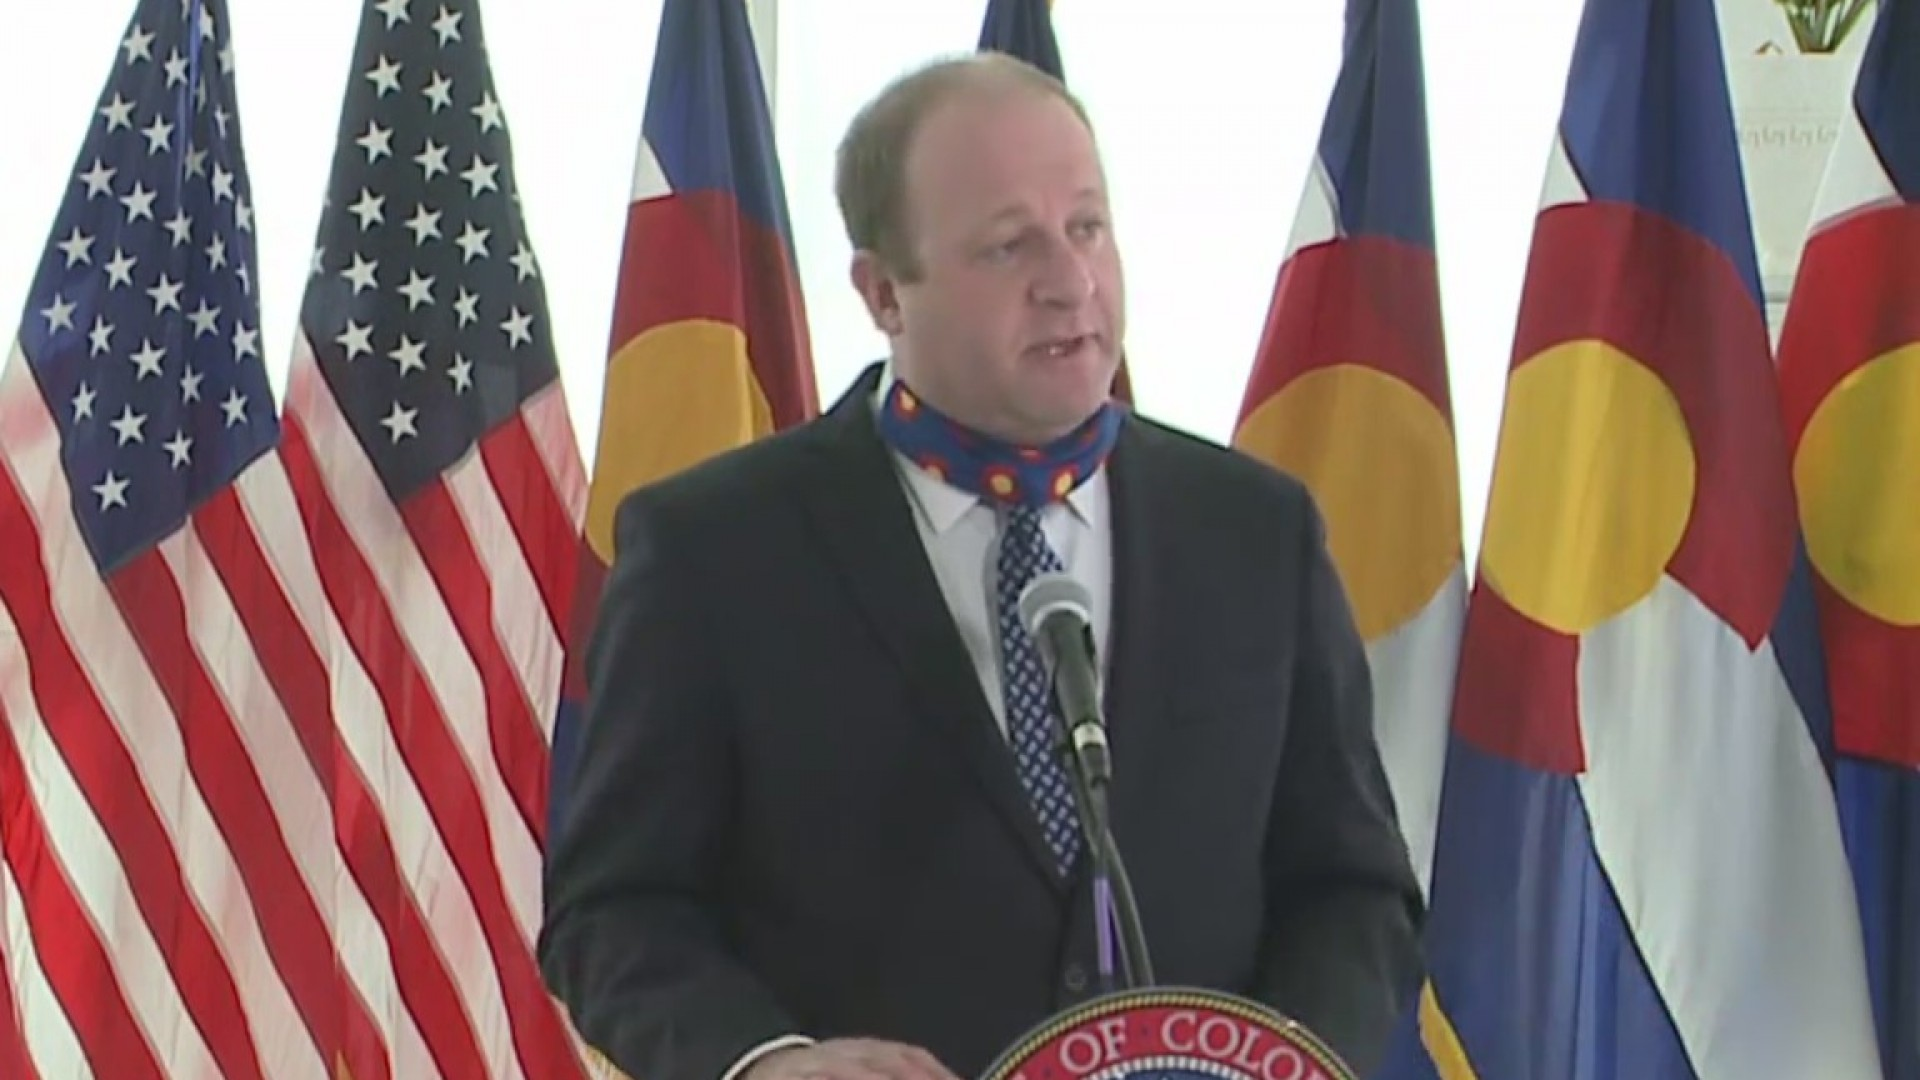 Gov. Jared Polis holds a news conference on COVID-19 in Colorado, on April 15, 2020.